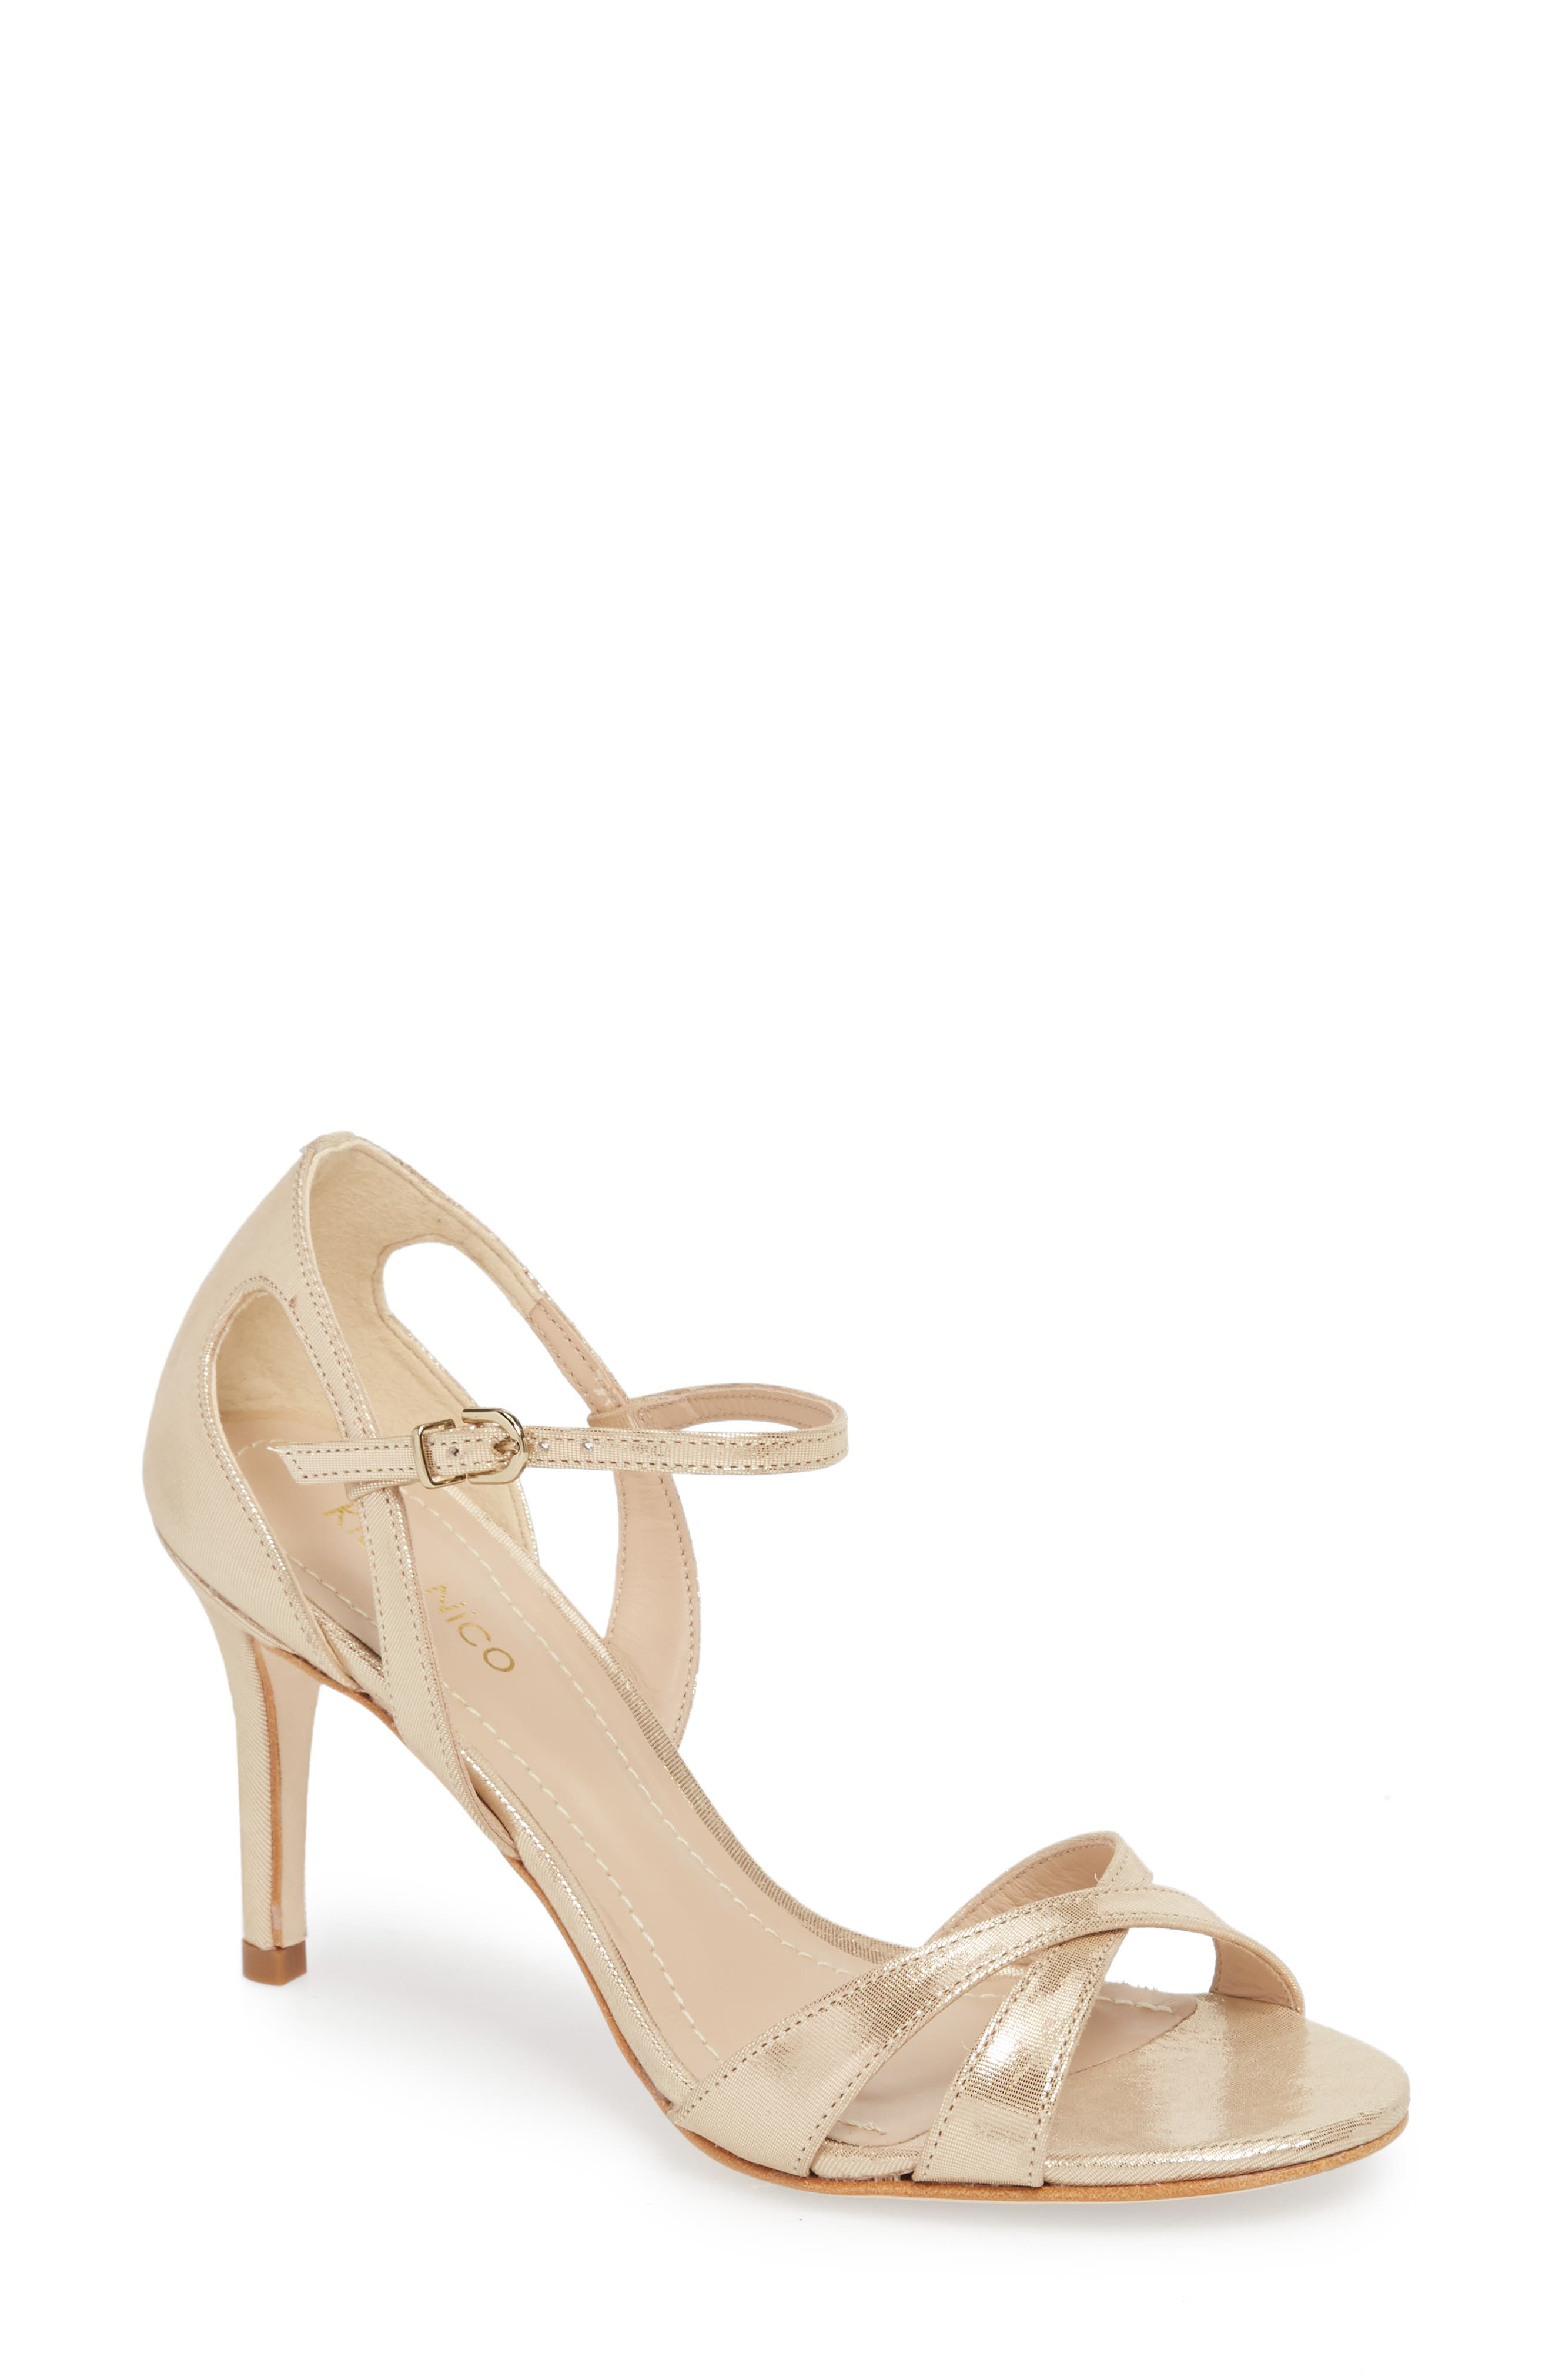 Alexa Sandal,                         Main,                         color, Champagne Leather